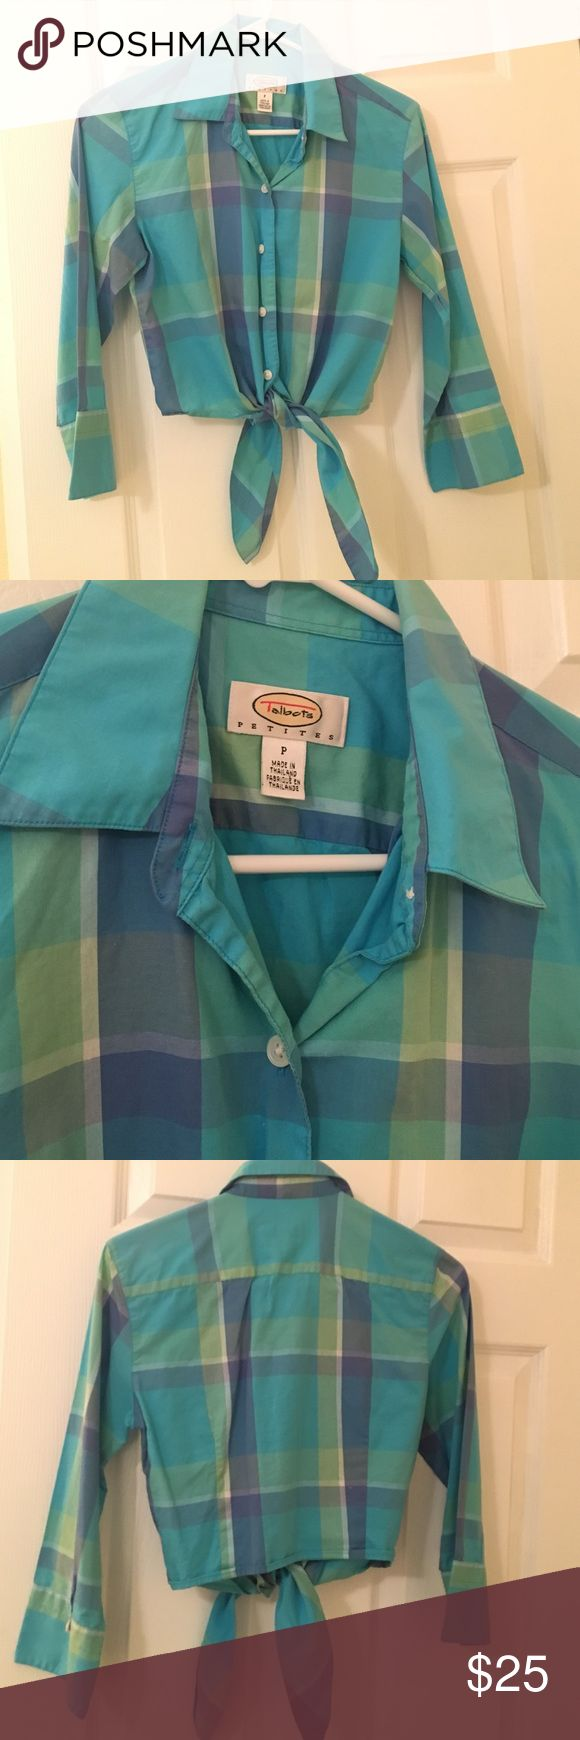 Talbots Petites Petite Crop Tie Front Button Plaid Talbots Petites Petite Small Crop Top Tie Front Button Down Plaid Top. Size Petite. Fits like a small 2-4. New never been worn. Gorgeous blue purple green teal plaid. Hits below belly button and above hips. So cute! Talbots Tops Crop Tops